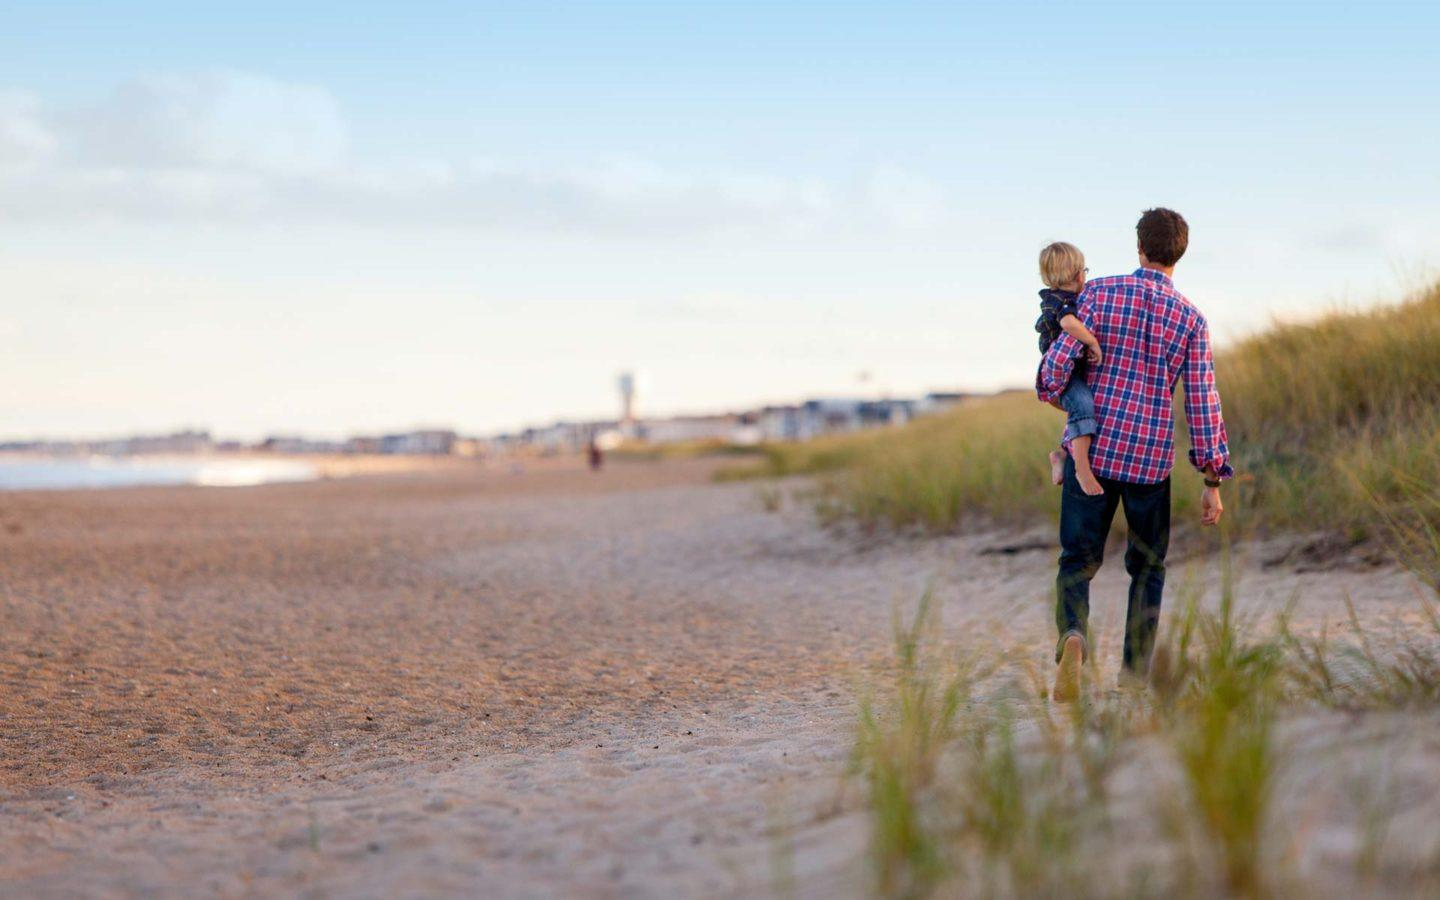 Man in flannel shirt holding his child while walking on a sandy beach